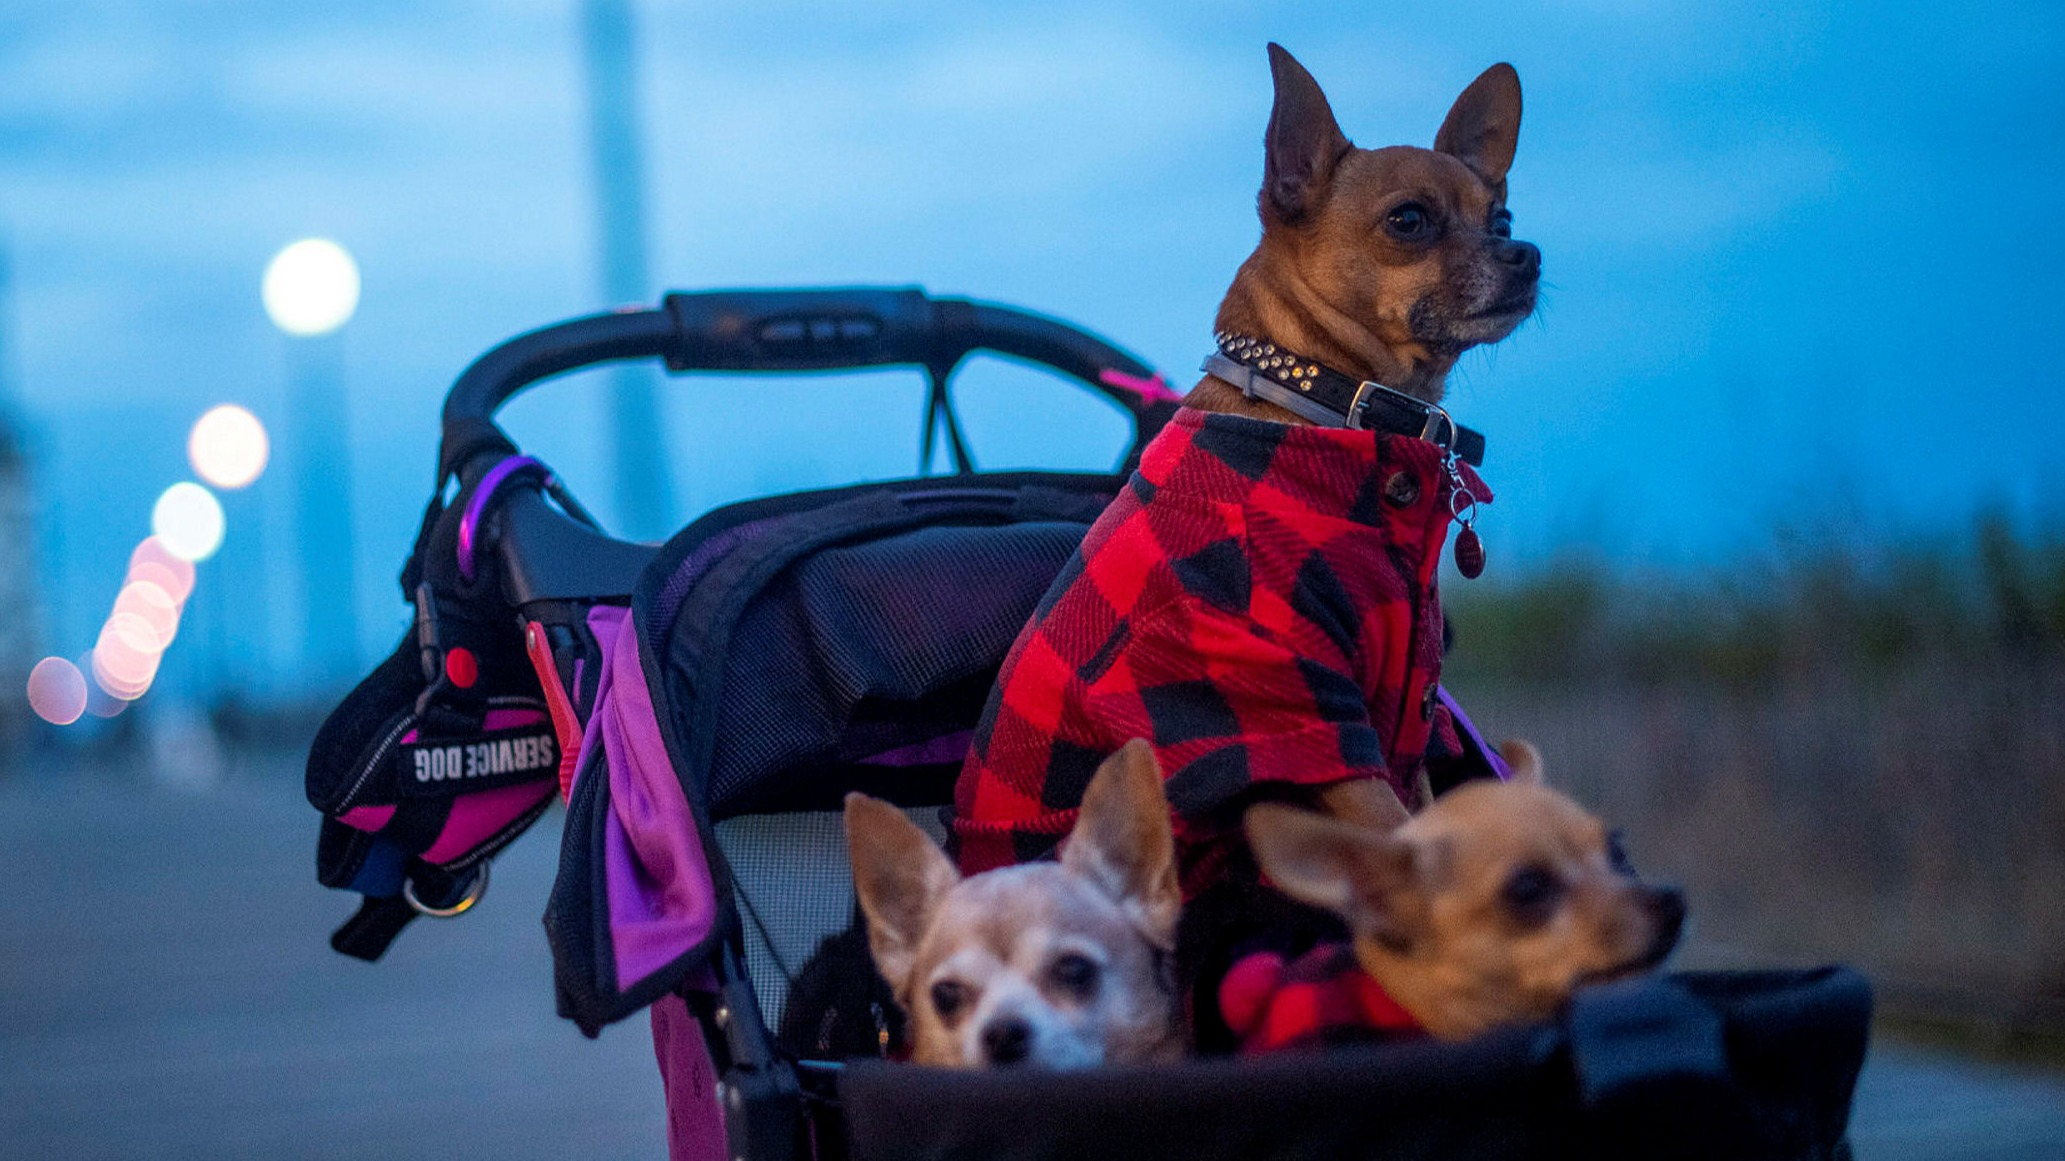 ft.com - Dave Lee in San Francisco - Chewy cashed in on pandemic pet boom but now must keep leash on Amazon